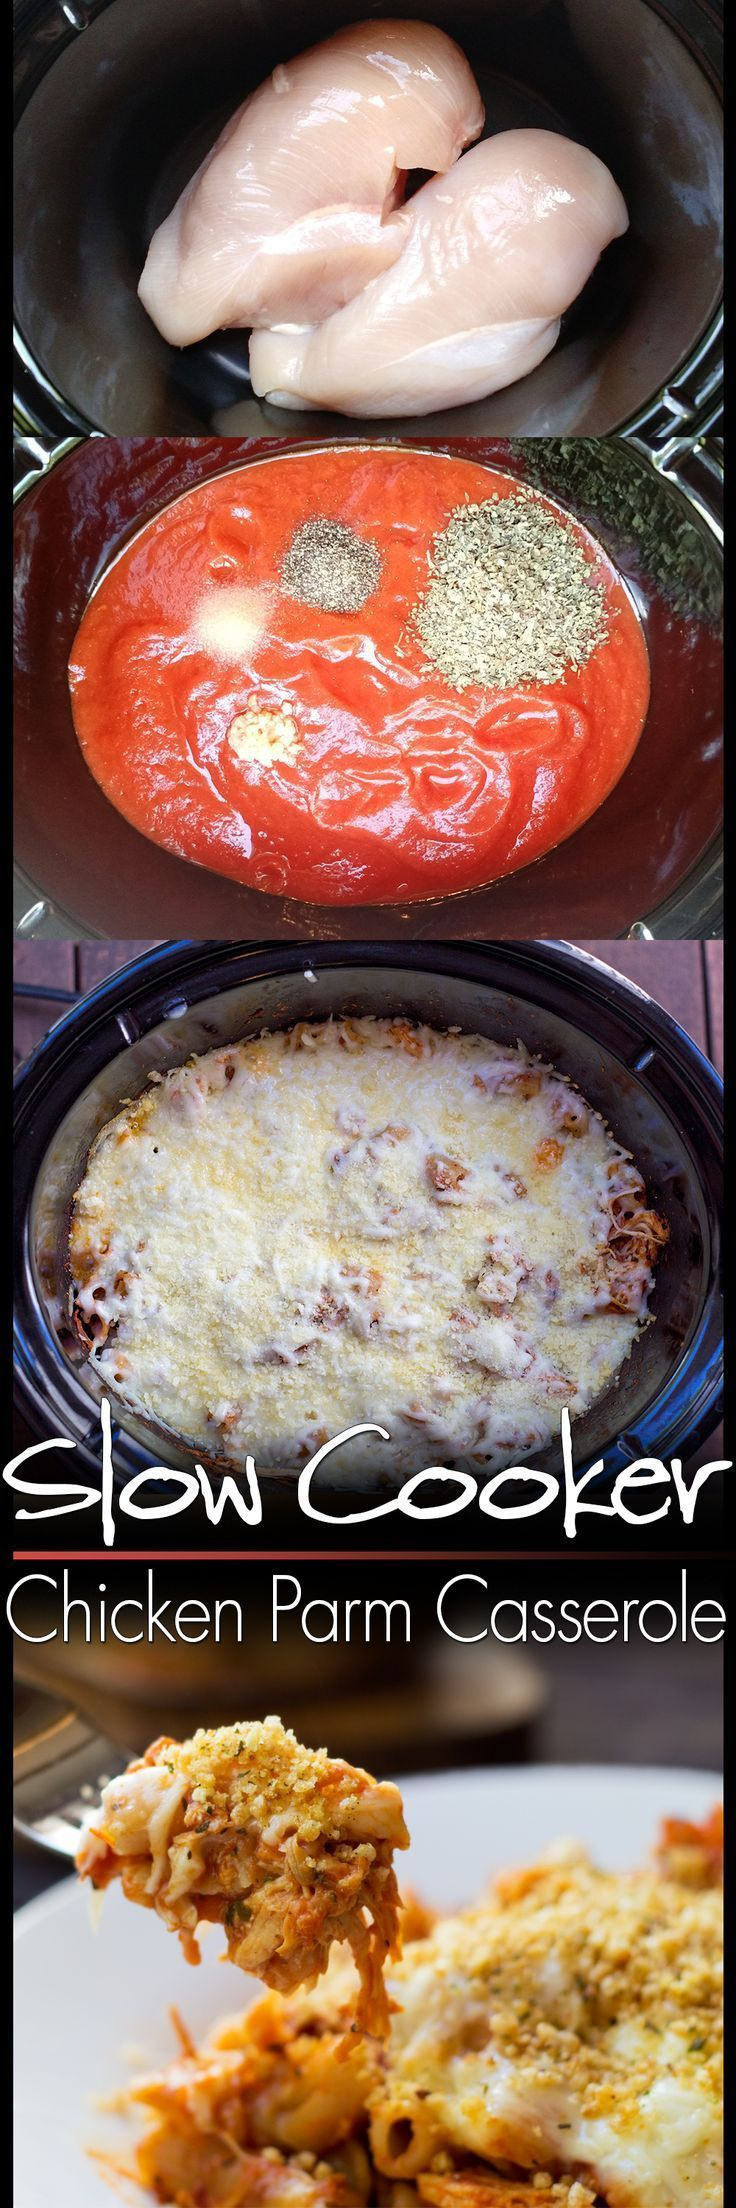 Dec 01,  · For the Slow Cooker Chicken Parmesan Lasagna Casserole I went with my 3-quart casserole crock made by the Crock-Pot brand. I have loved this casserole shaped crockpot for recipes just like this. I love that the crock insert is completely oven and dishwasher safe.5/5(11).